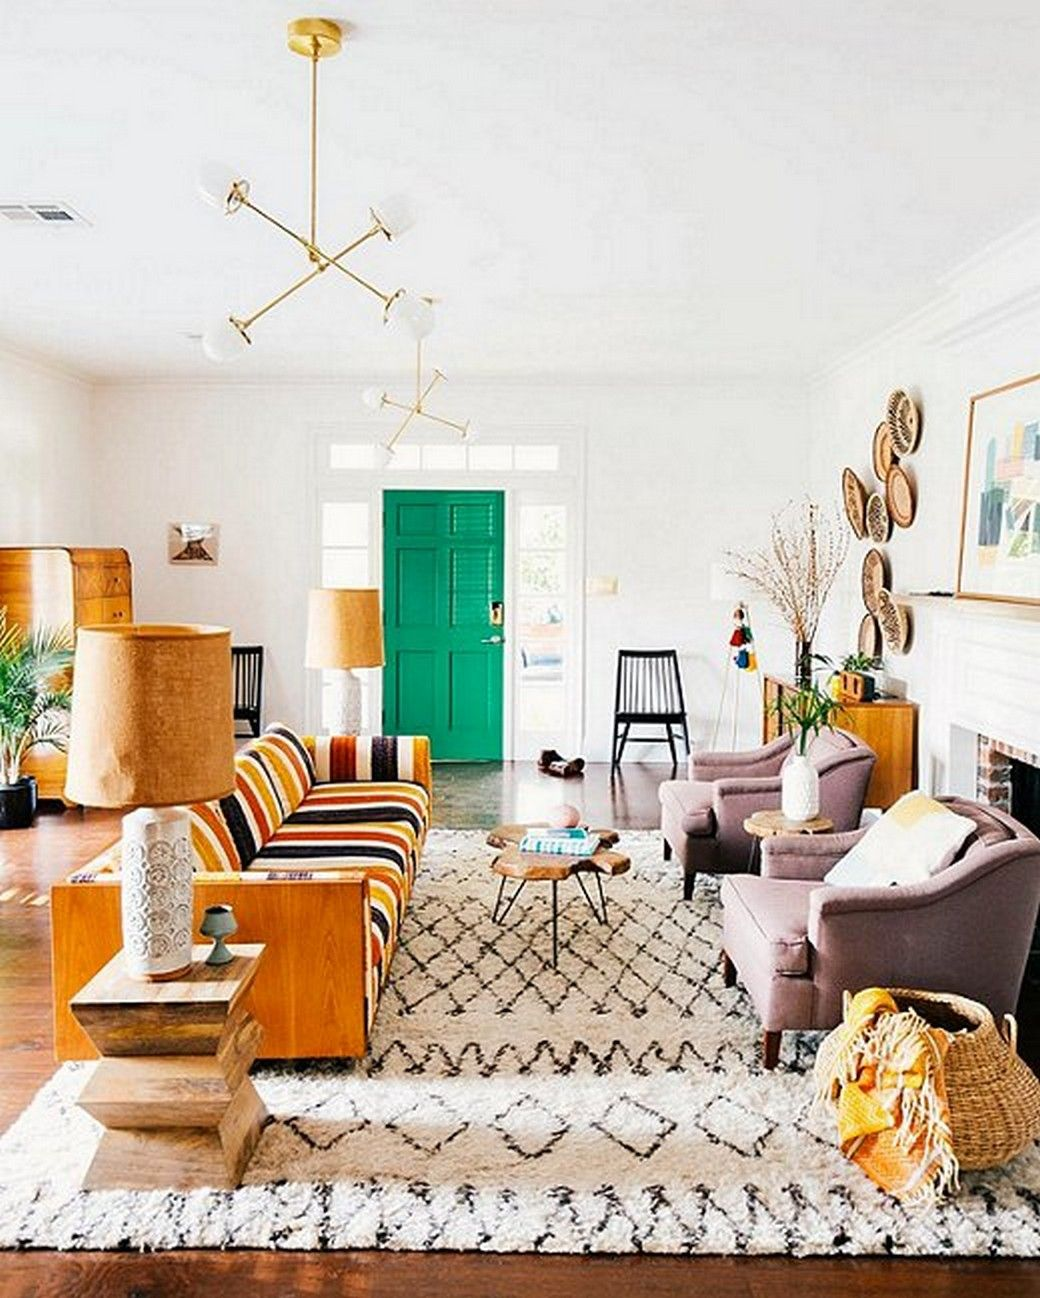 30 Bright And Colorful Family Friendly Living Room Design Ideas ...